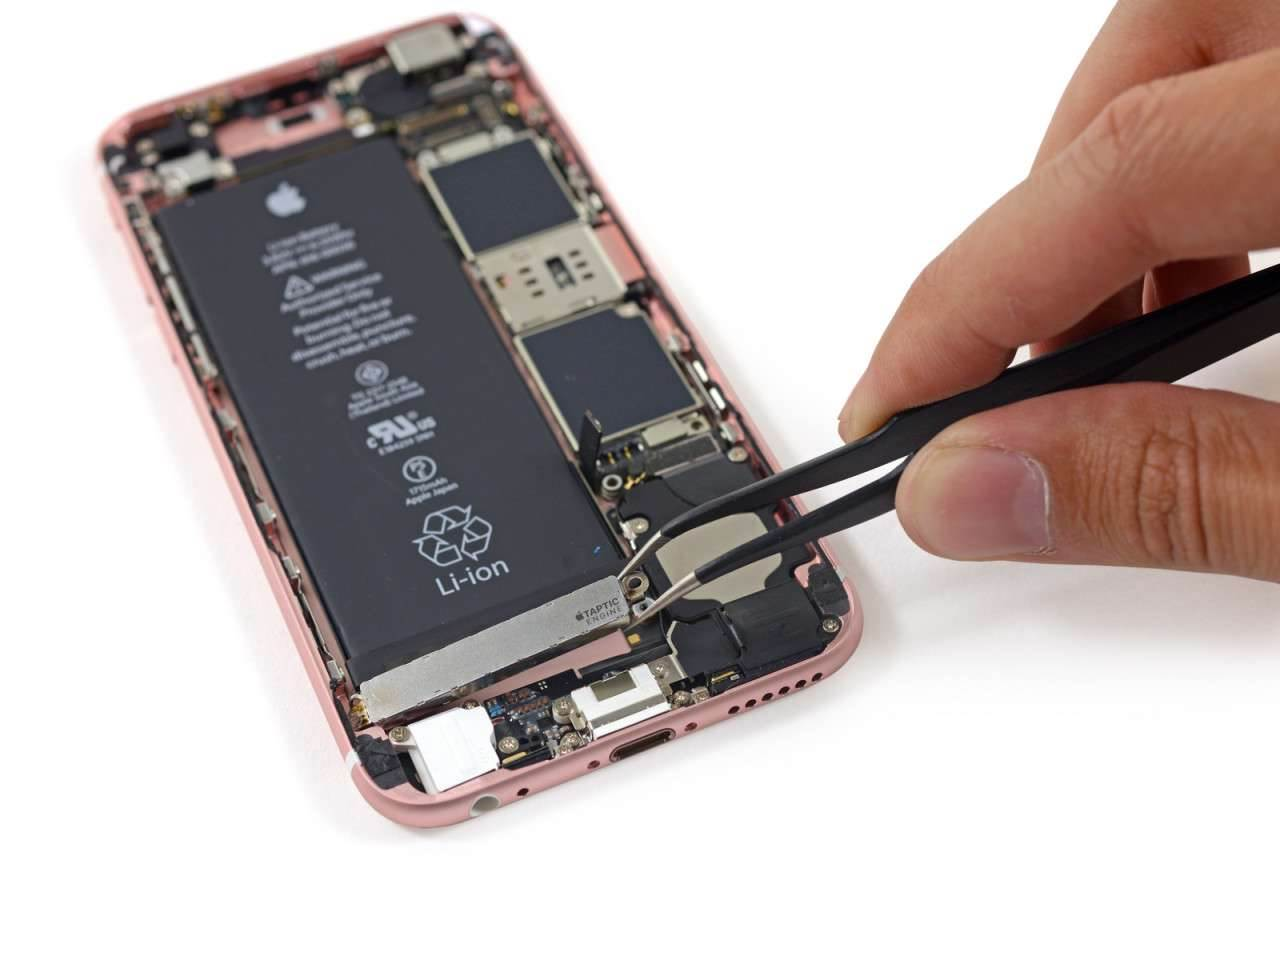 iPhone-6s-teardown-1-1280x960